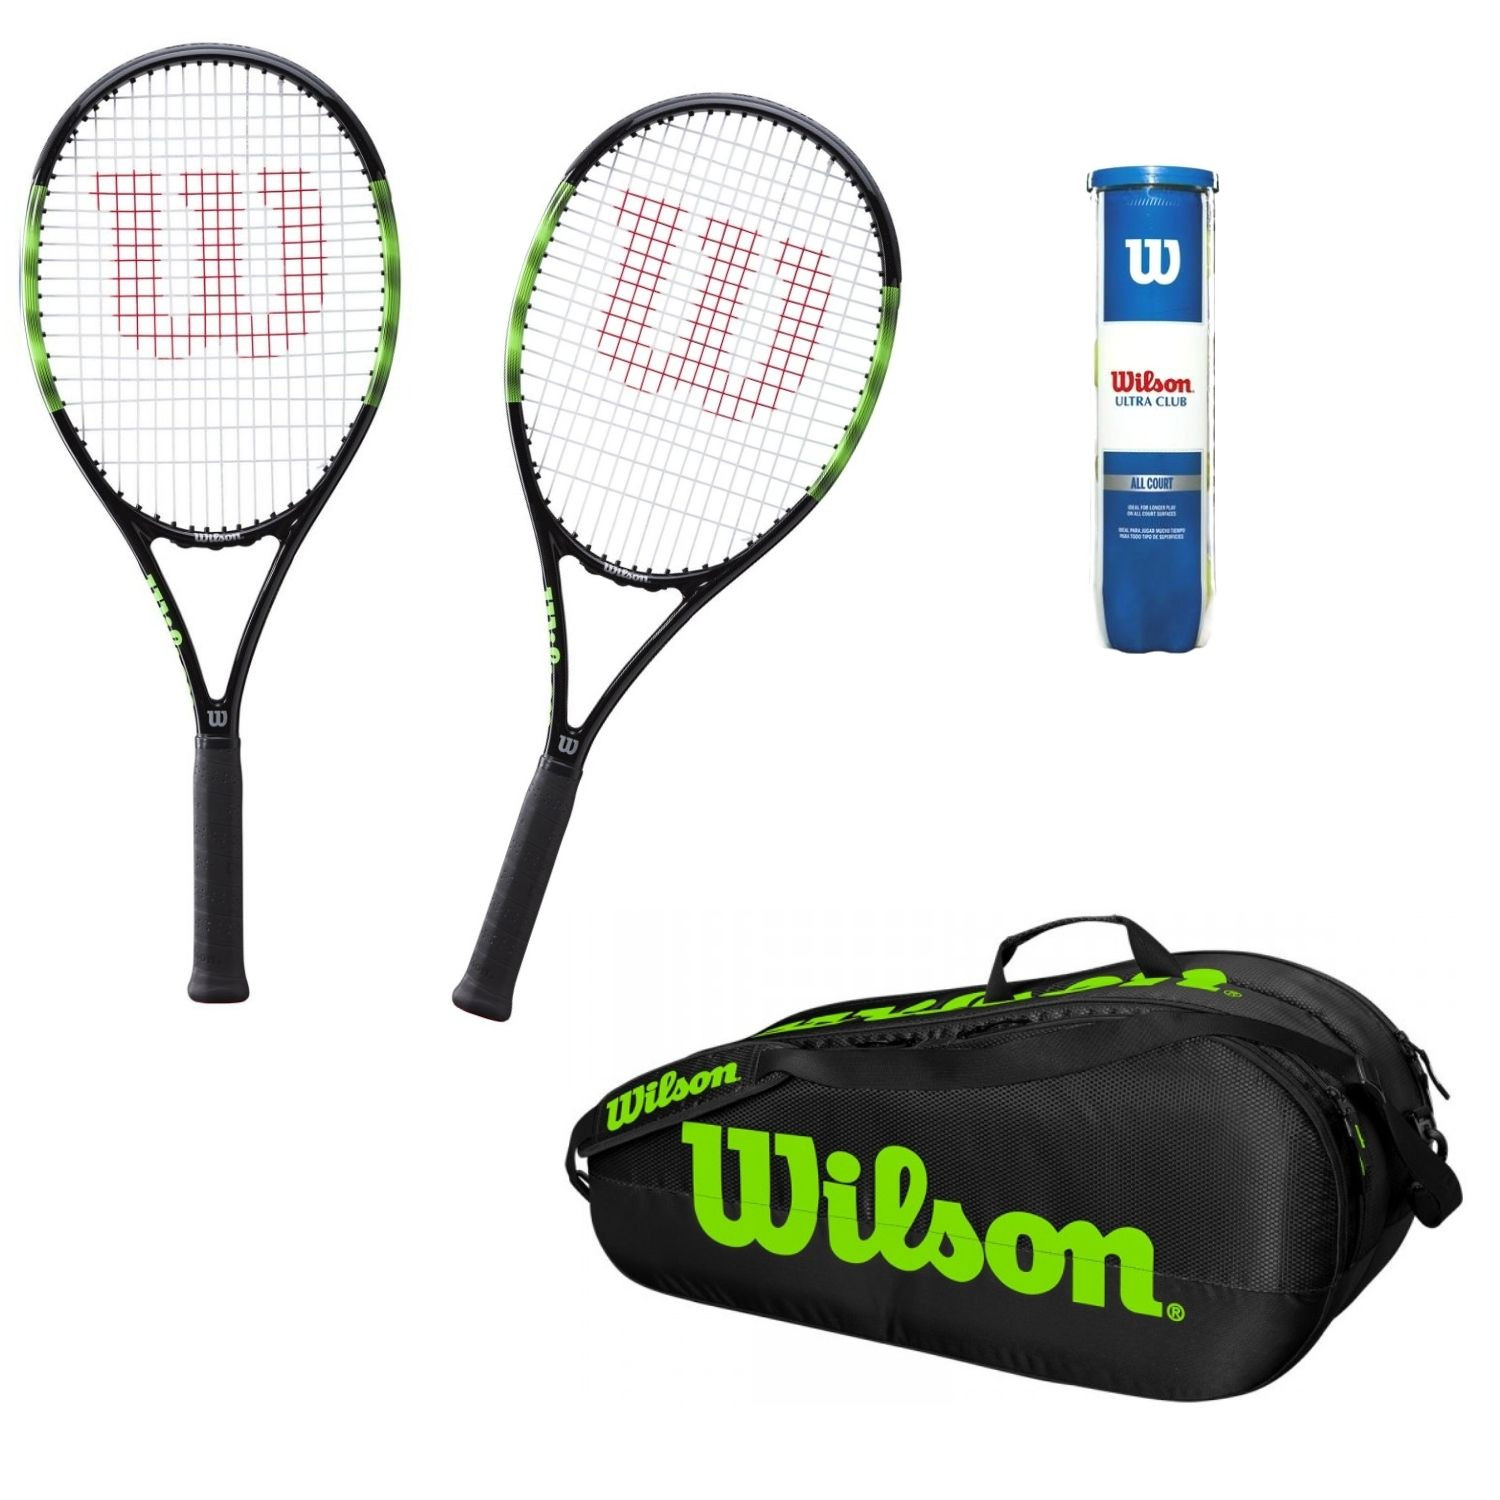 Tenisový set WILSON Blade Feel Team 103 WO  Vak Team 2 Comp  Loptičky Ultra Club All Court Zelená L2